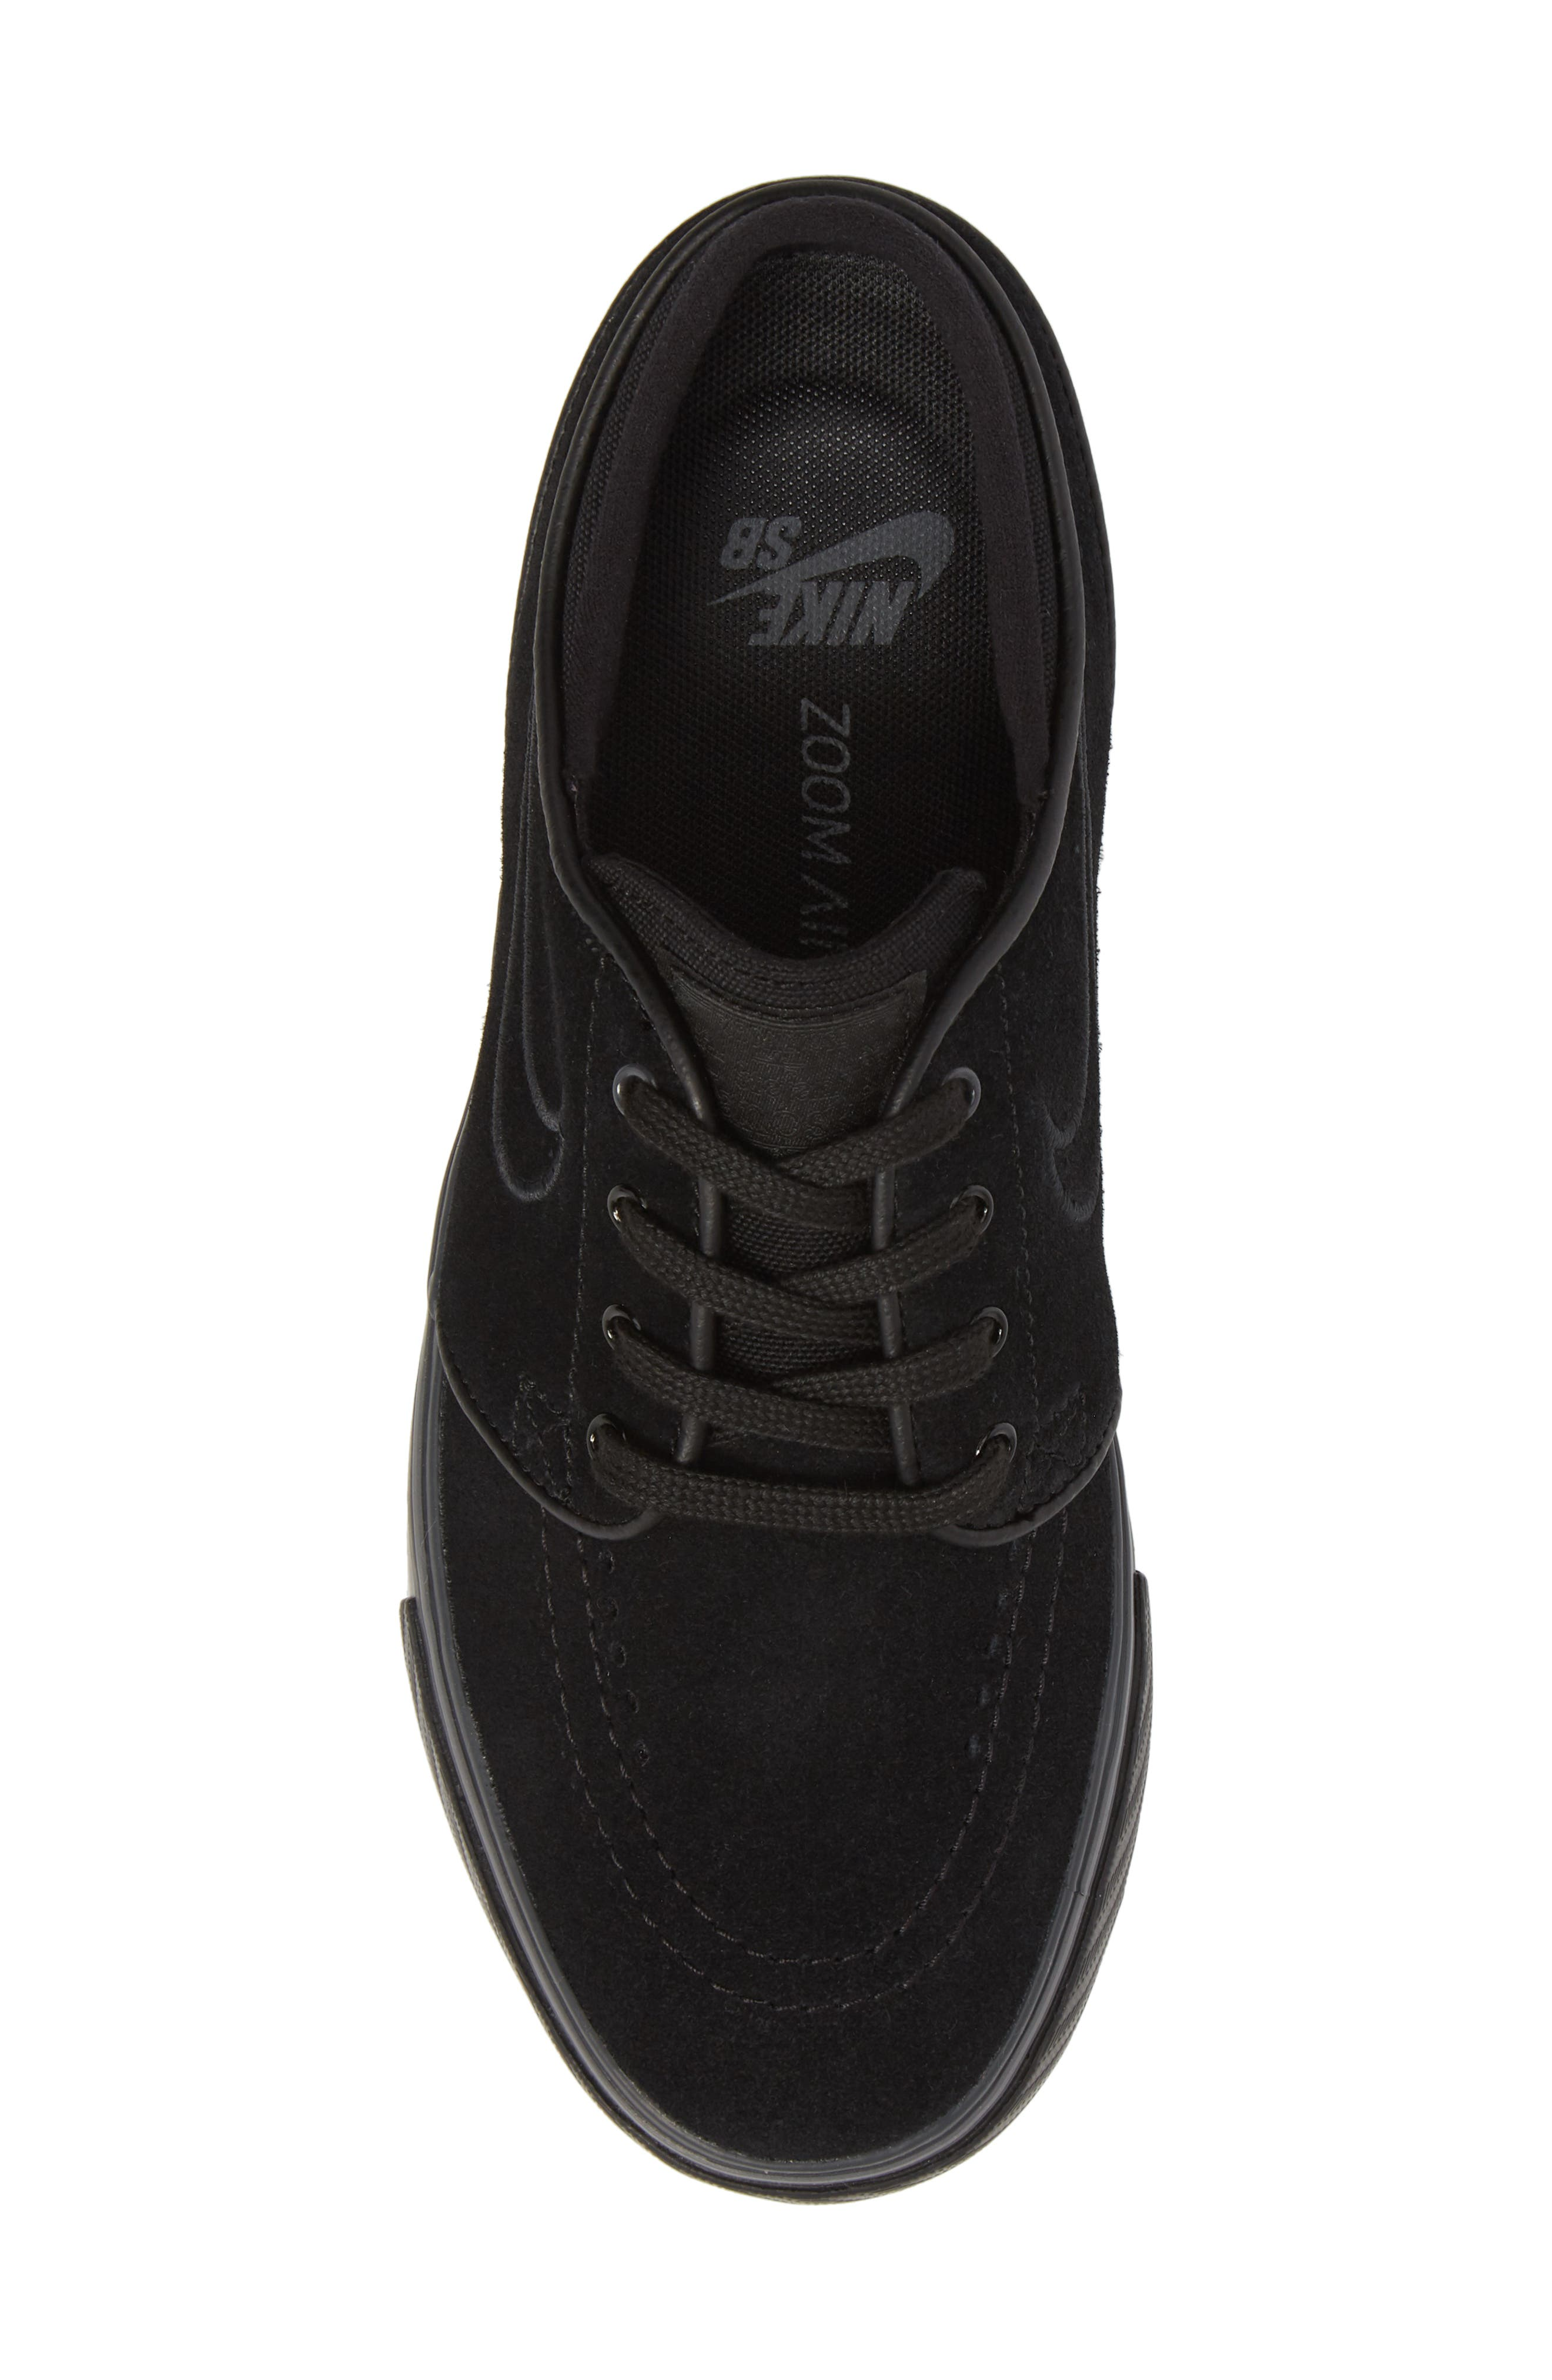 SB Air Zoom Stefan Janoski Skate Sneaker,                             Alternate thumbnail 5, color,                             Black/ Black/ Black